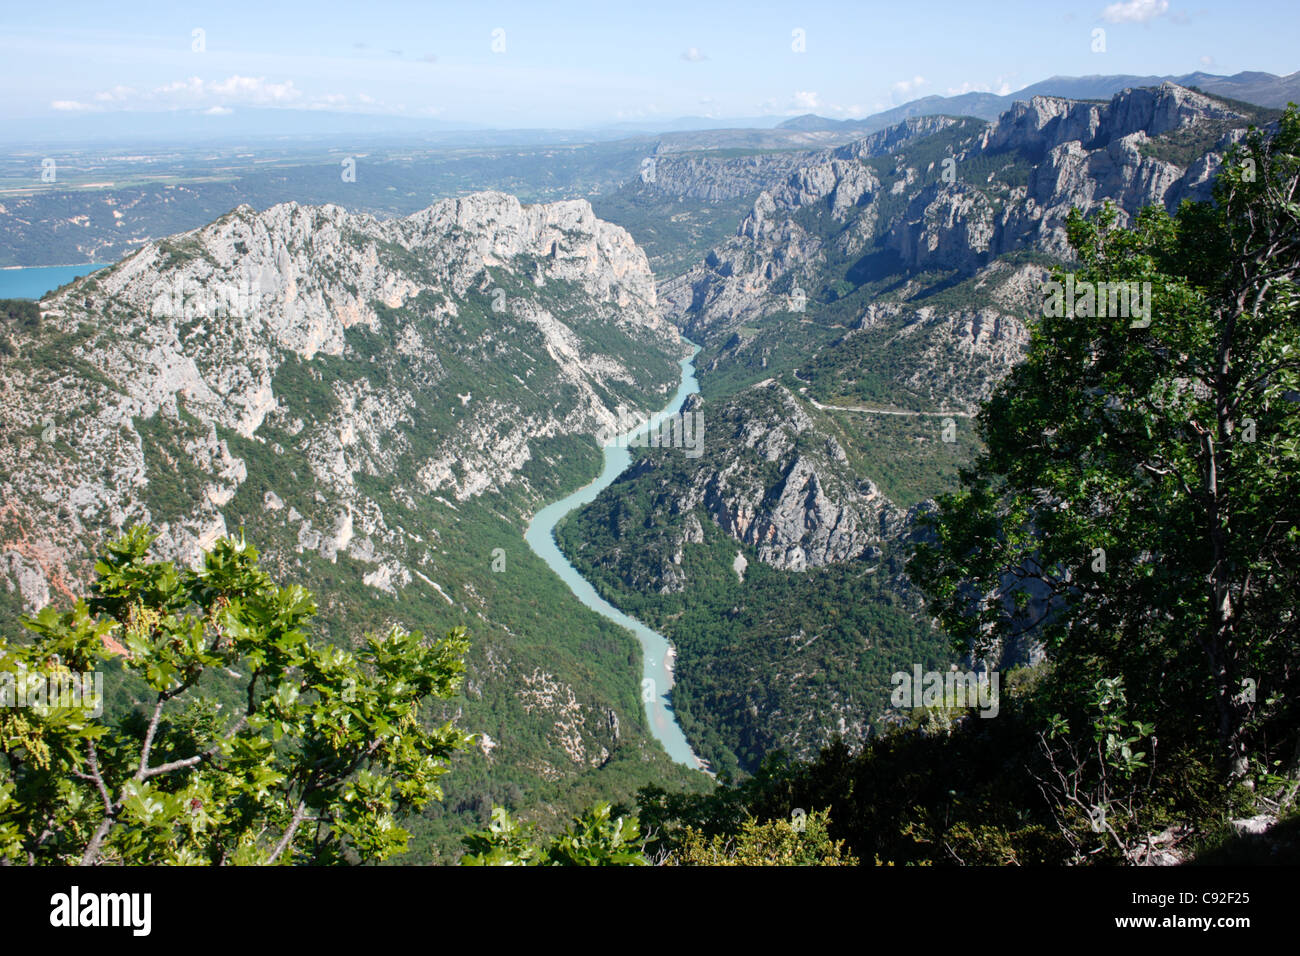 The Verdon Gorge is a beautiful river canyon which is a popular tourist destination. - Stock Image